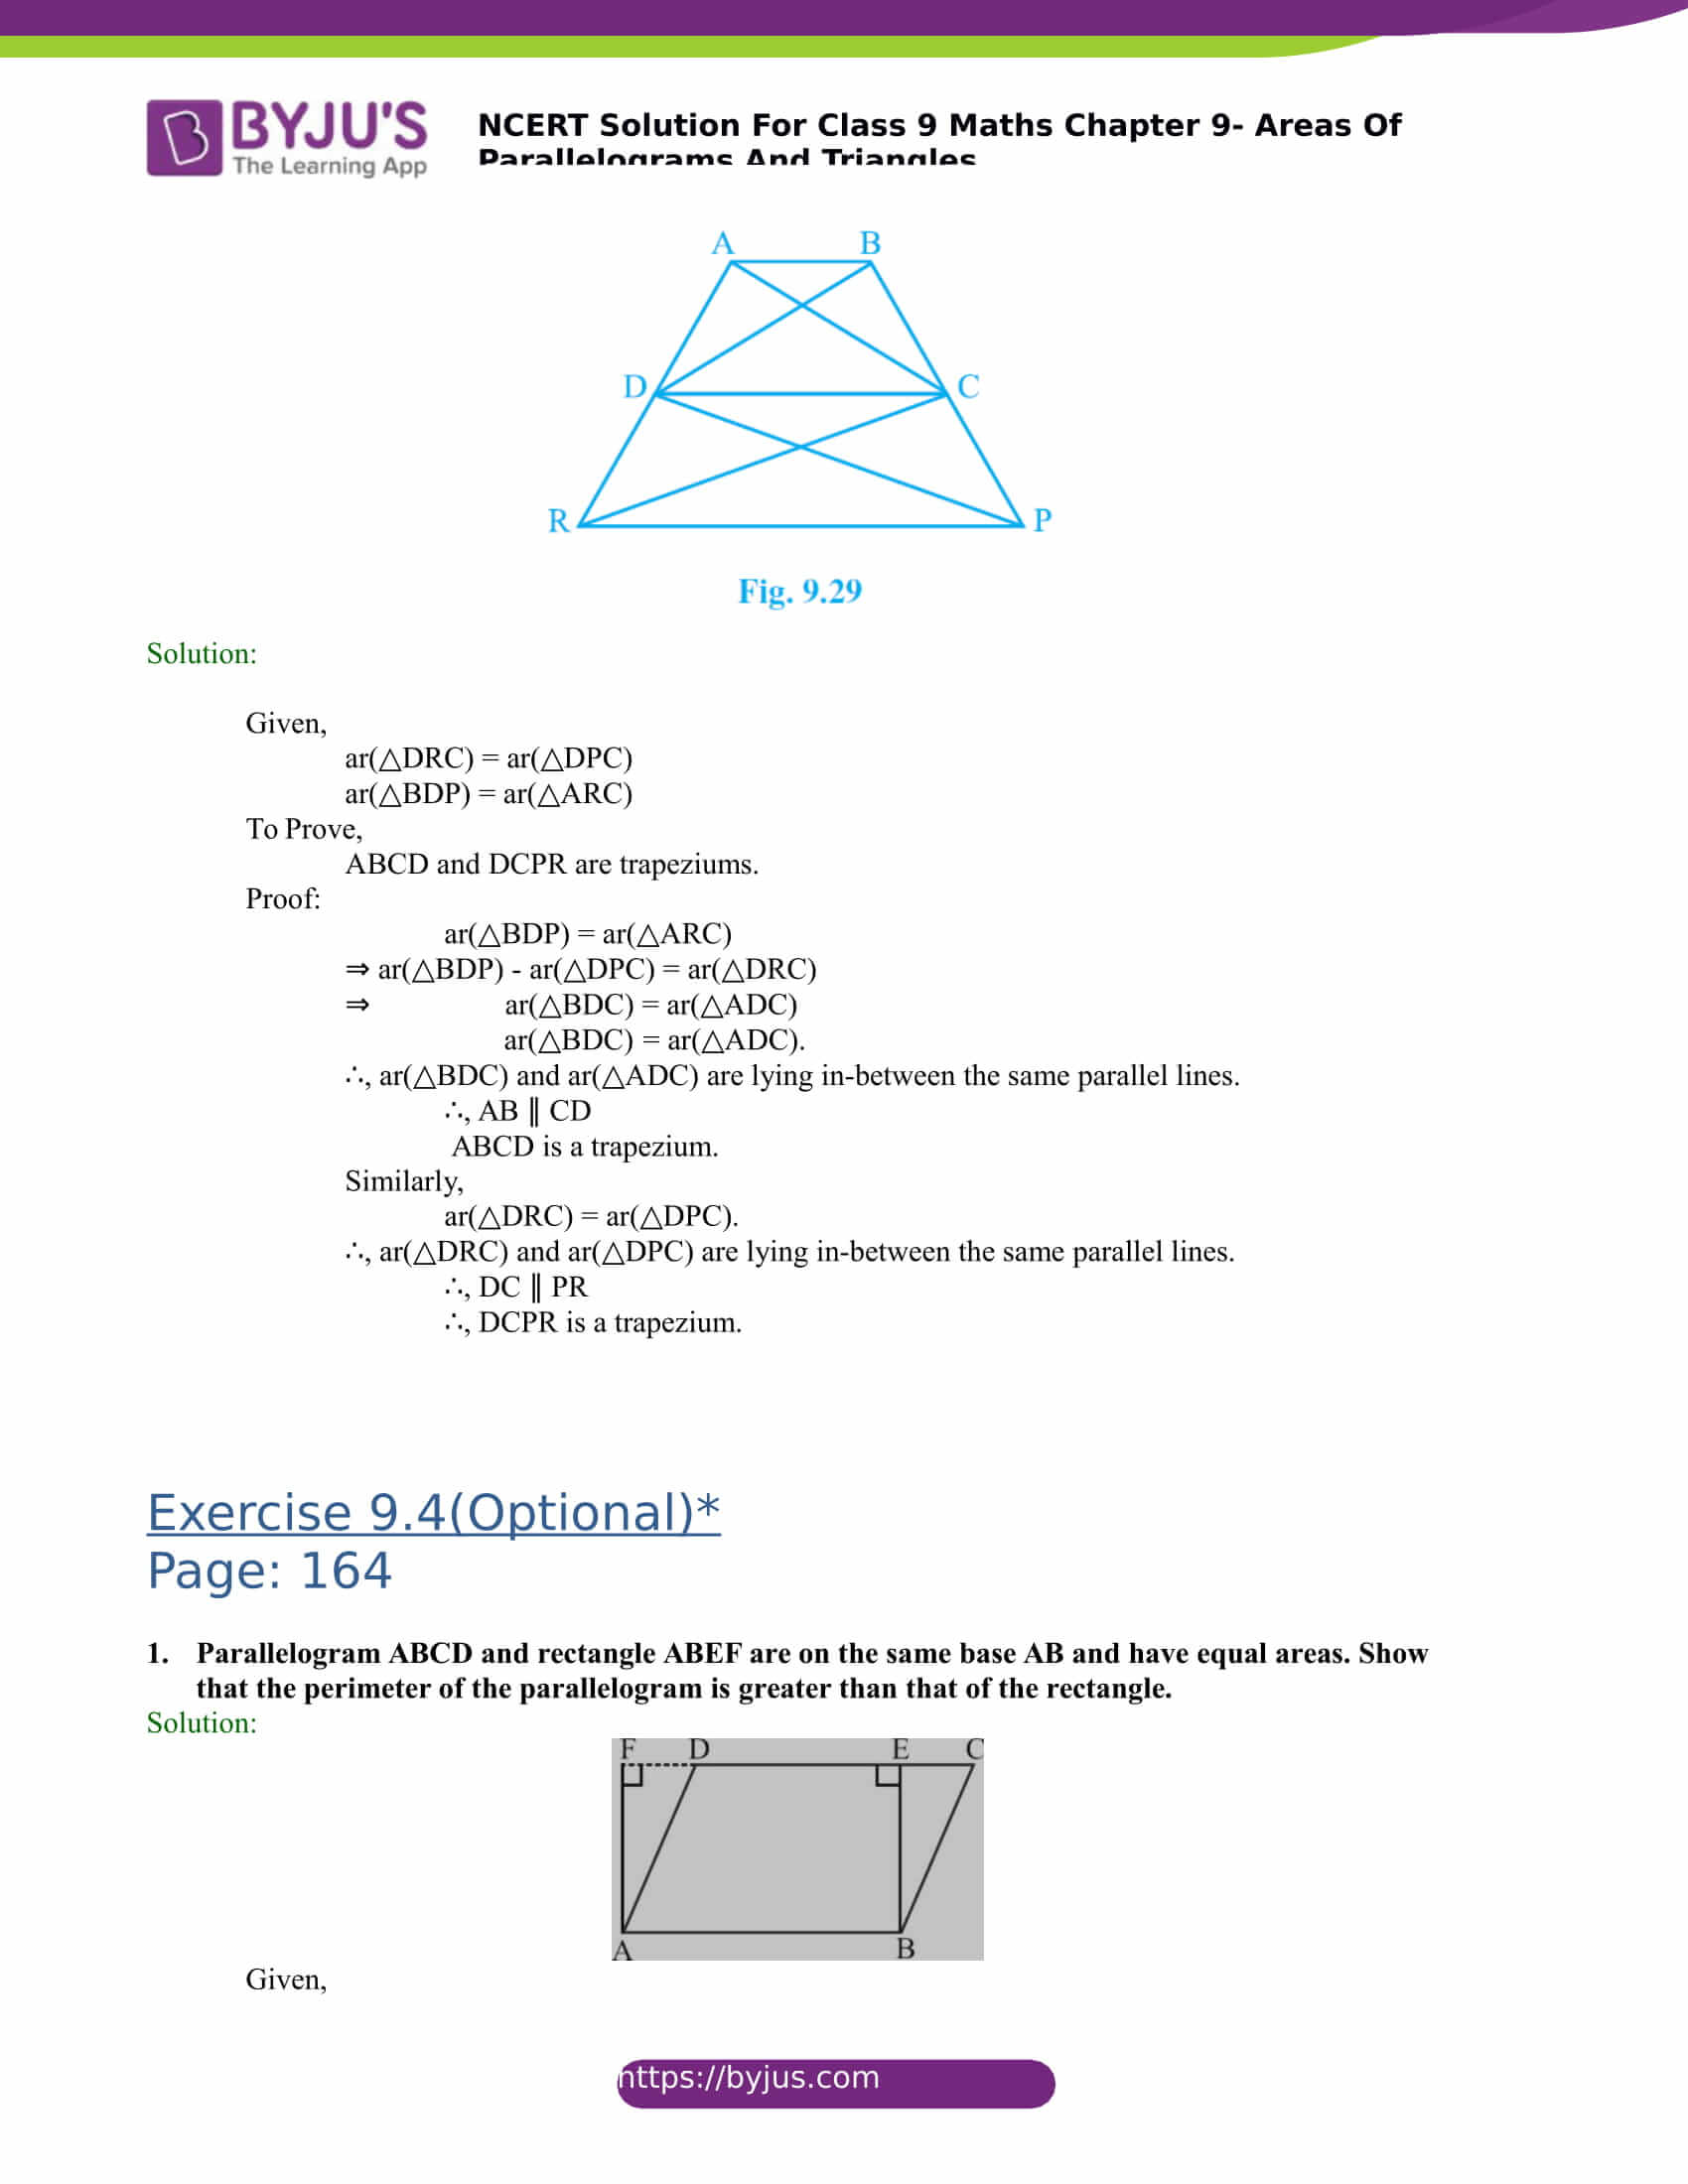 NCERT Solutions for class 9 Maths Chapter 9 Areas of parallelograms and triangles Part 19